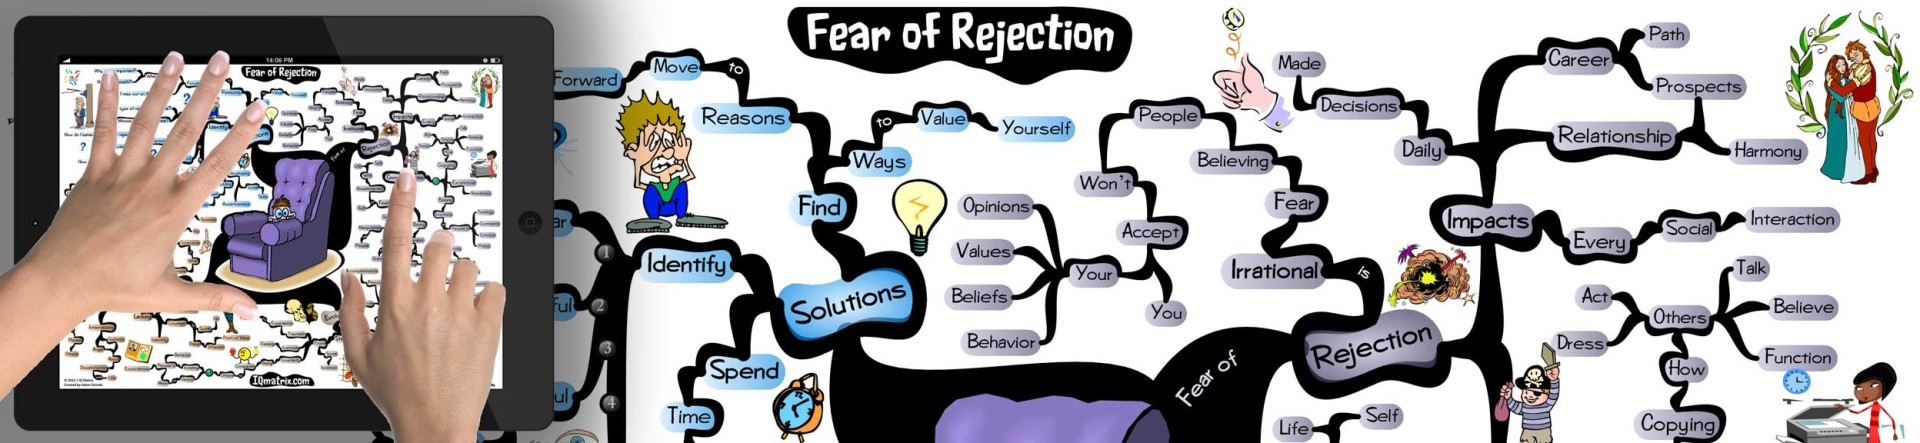 How to Overcome the Fear of Rejection and Regain Your Self.